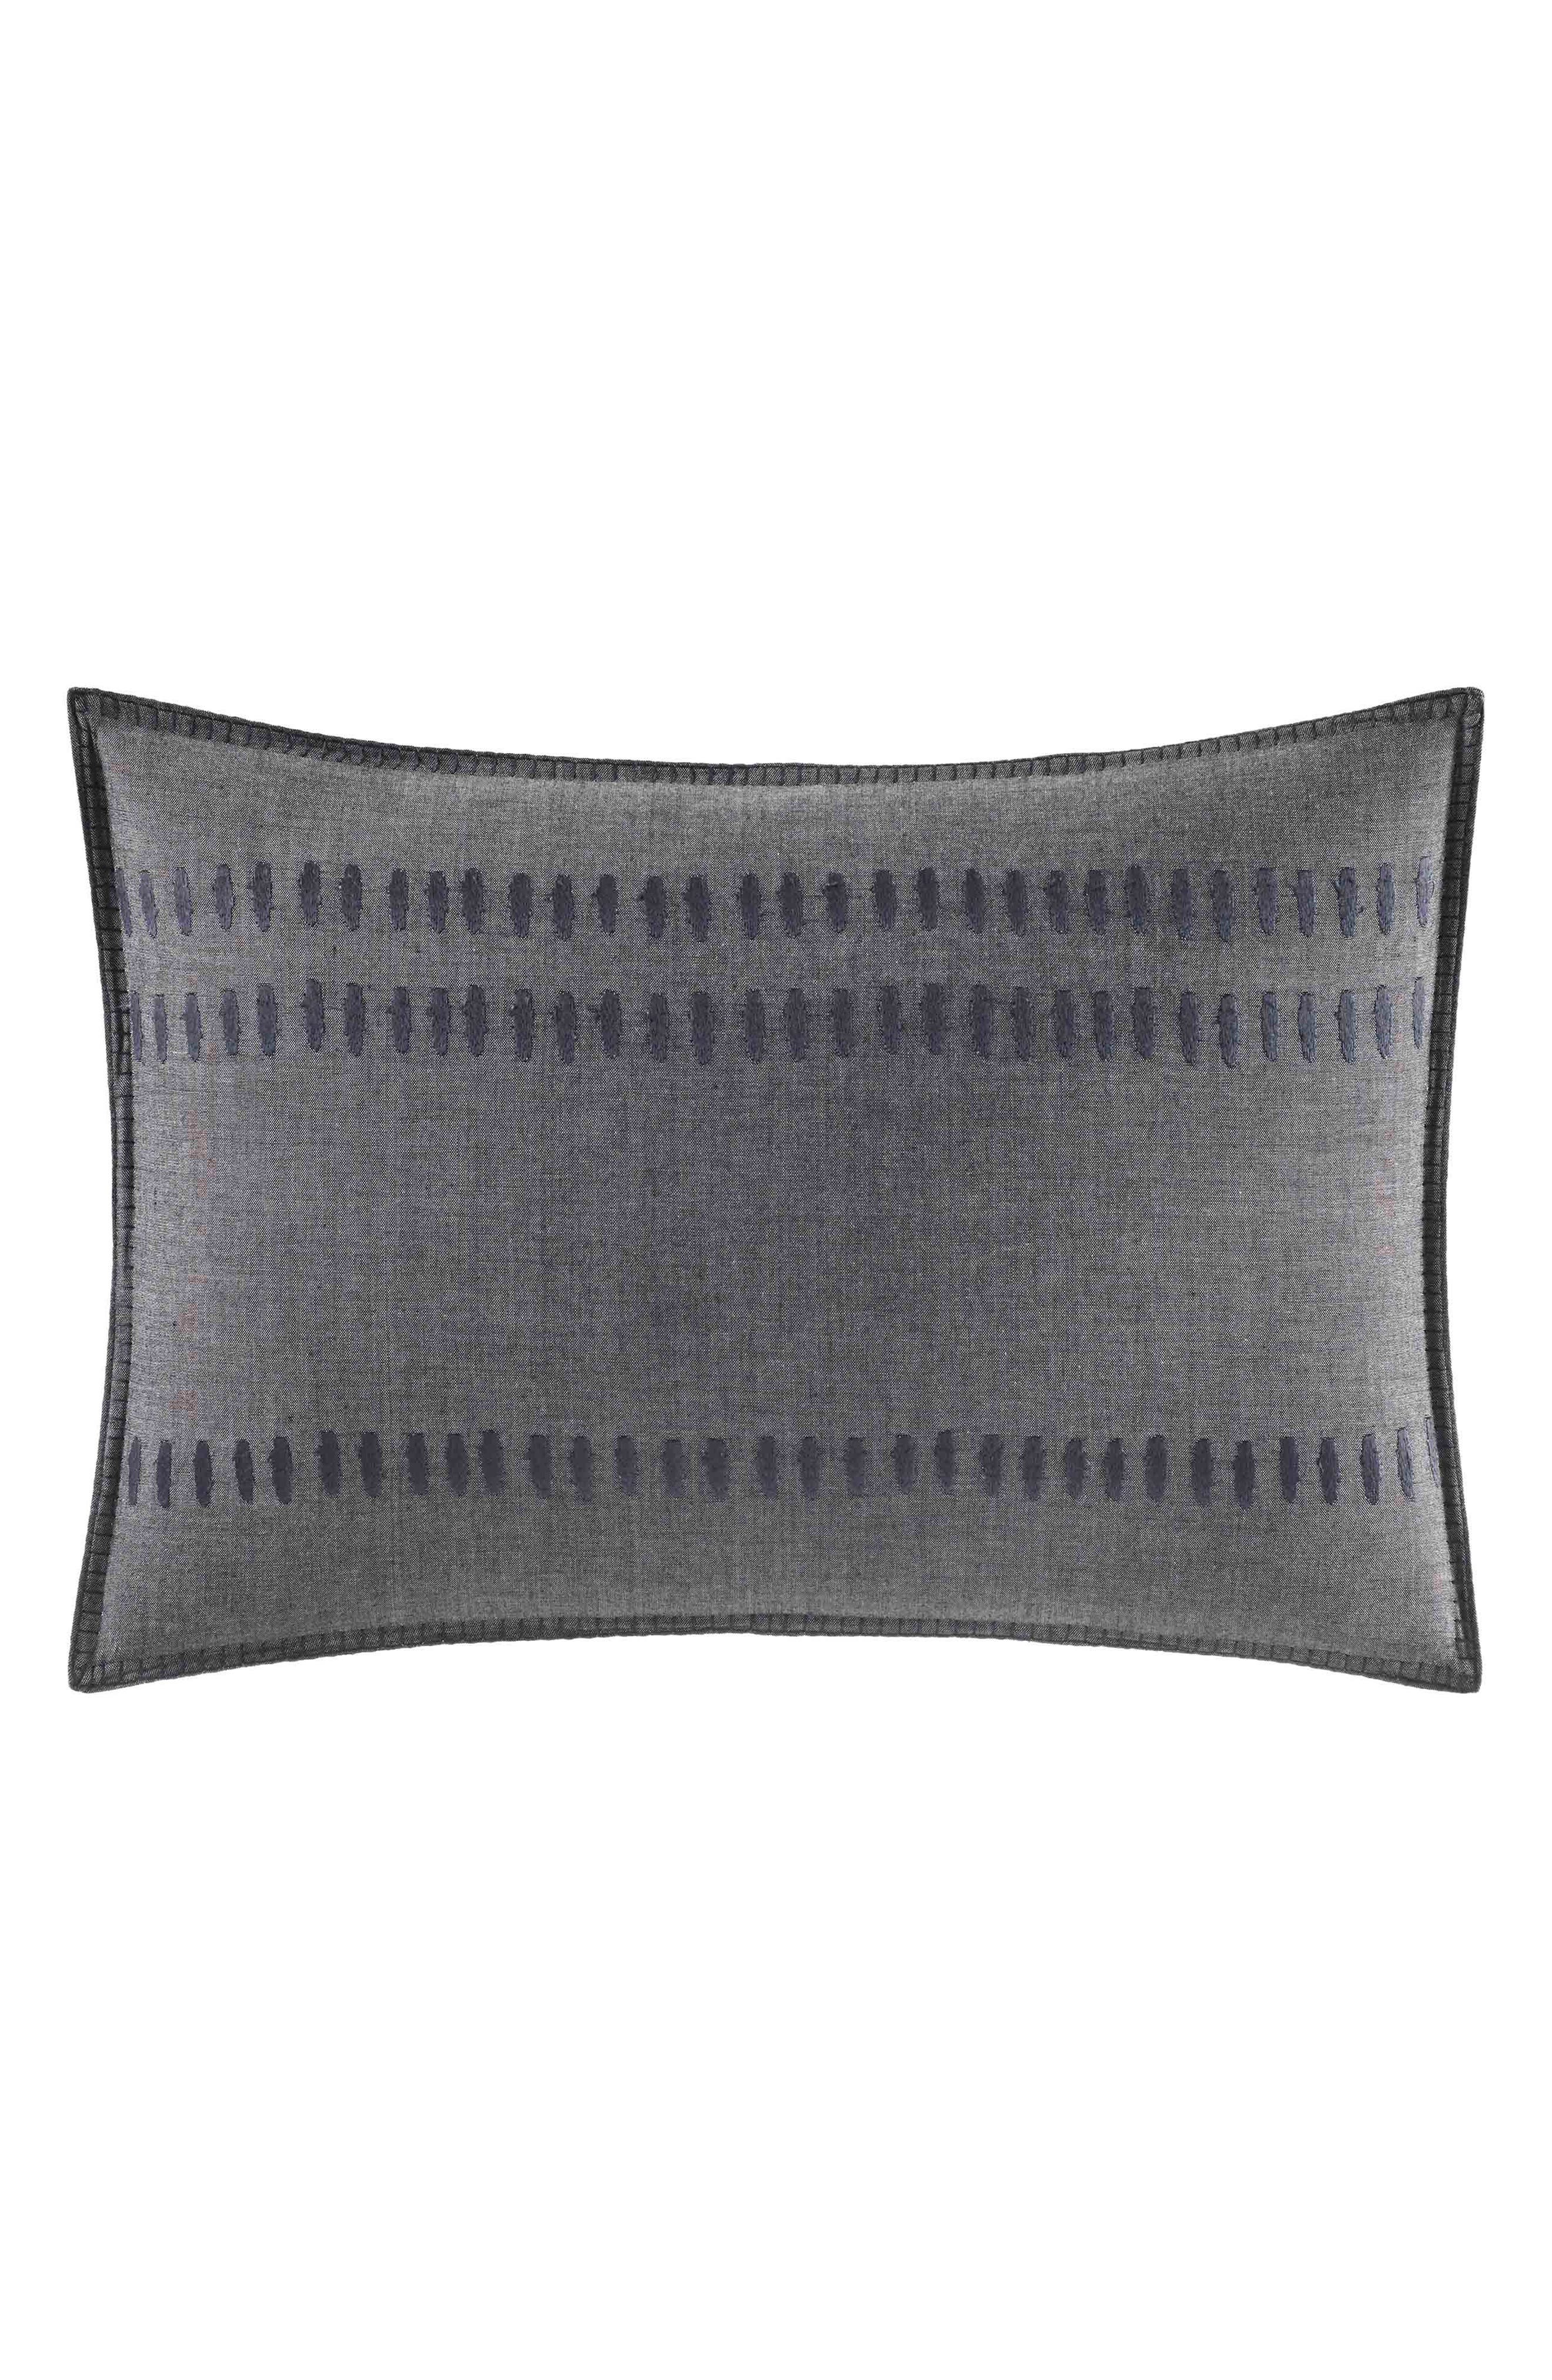 Nomad Stitched Accent Pillow,                             Main thumbnail 1, color,                             Dark Grey